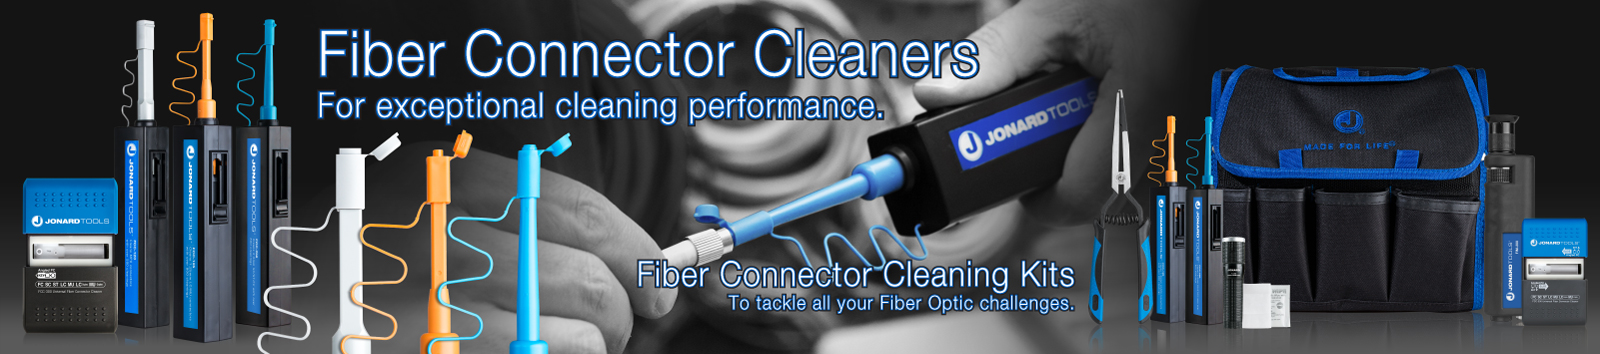 Product_Feature_Banner_Fiber_Cleaners_2.jpg